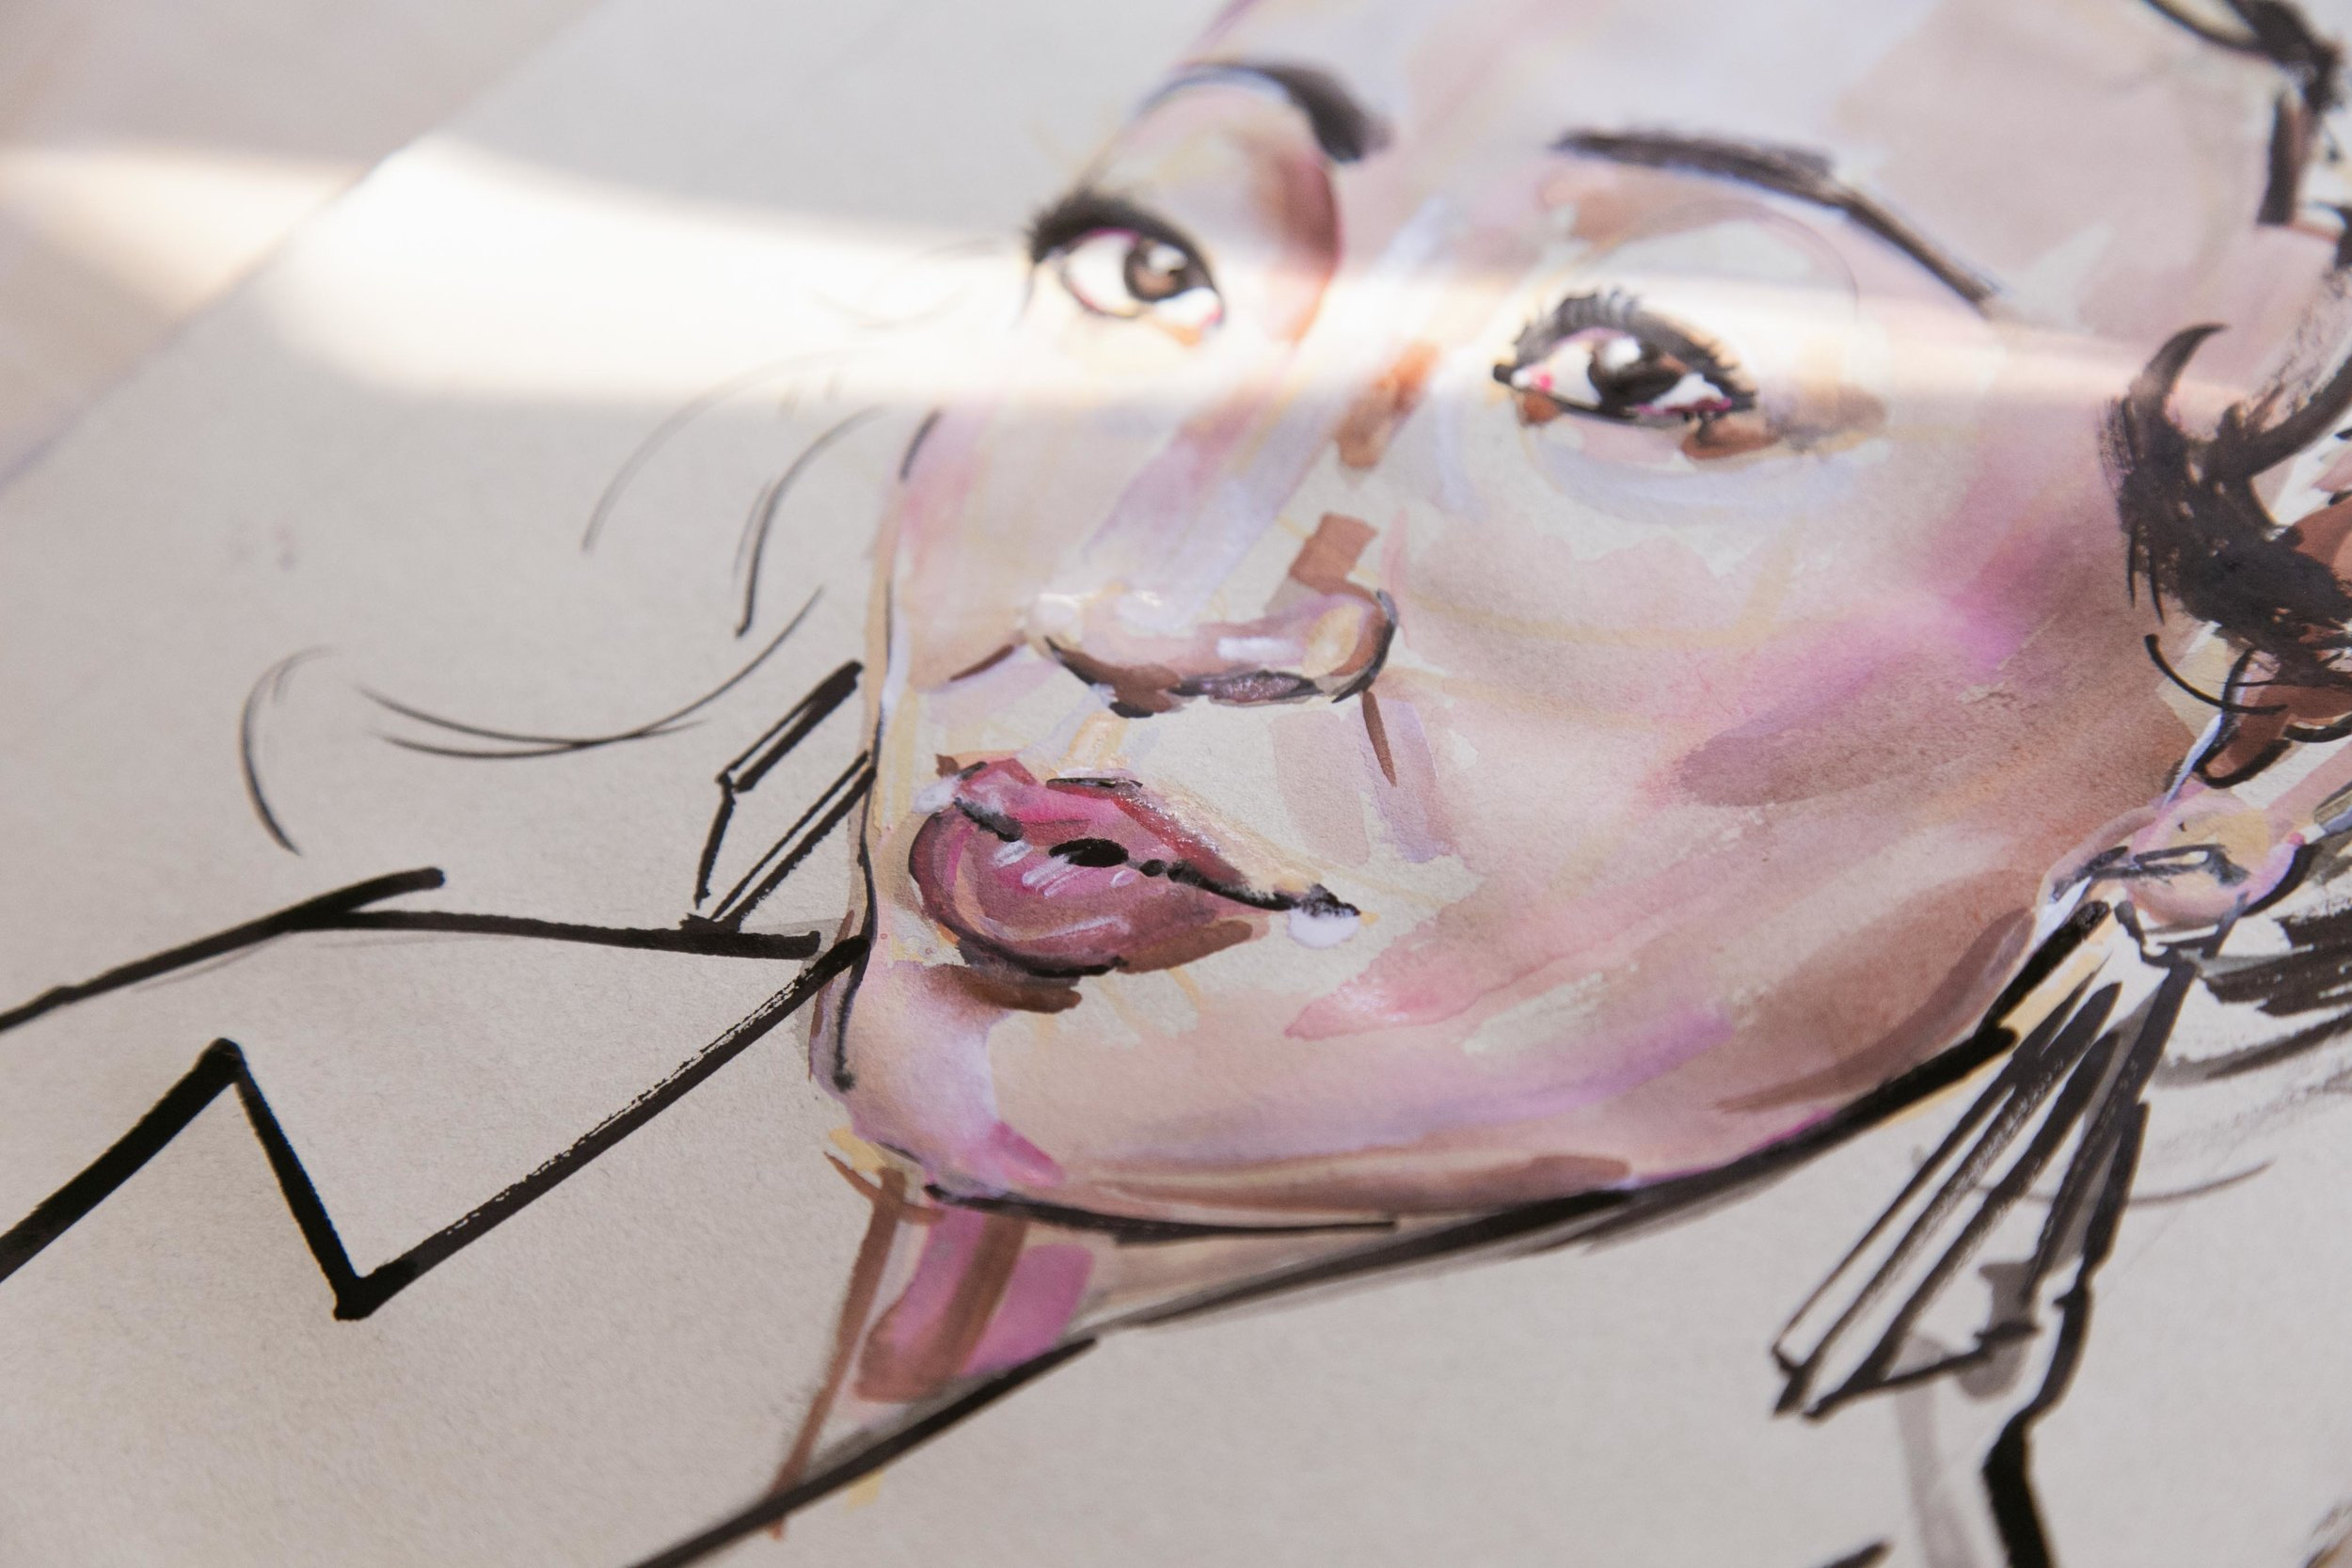 Victoria-Riza Fashion Illustrator | Sandra Oh is the first Asian women to be nominated for Lead Actress in a Drama Series for her role in Killing Eve